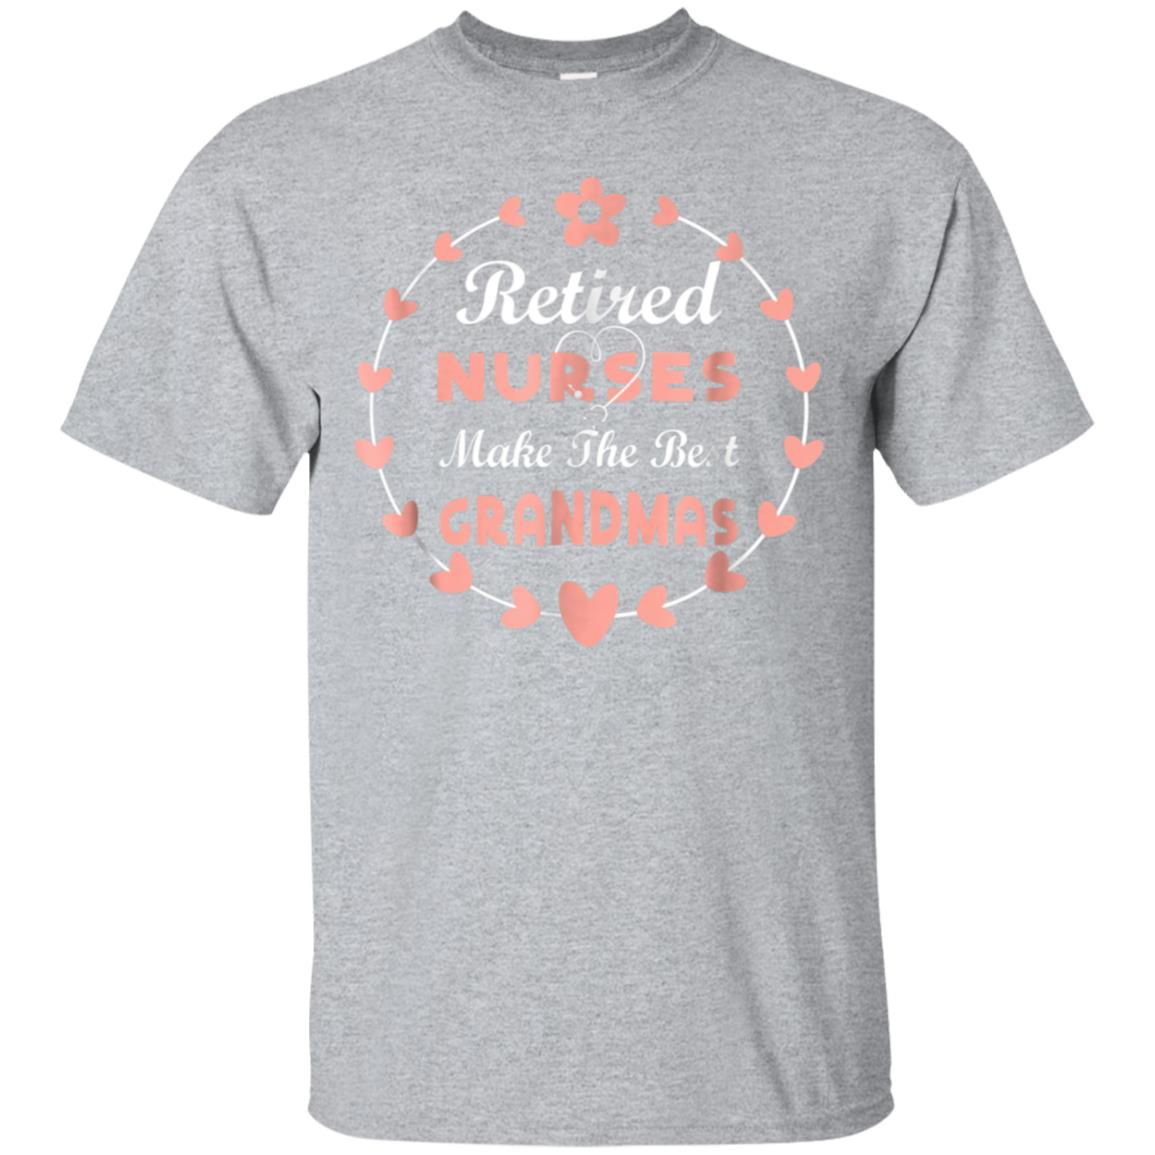 Retired Nurses Make the Best Grandmas T Shirt Gift 99promocode